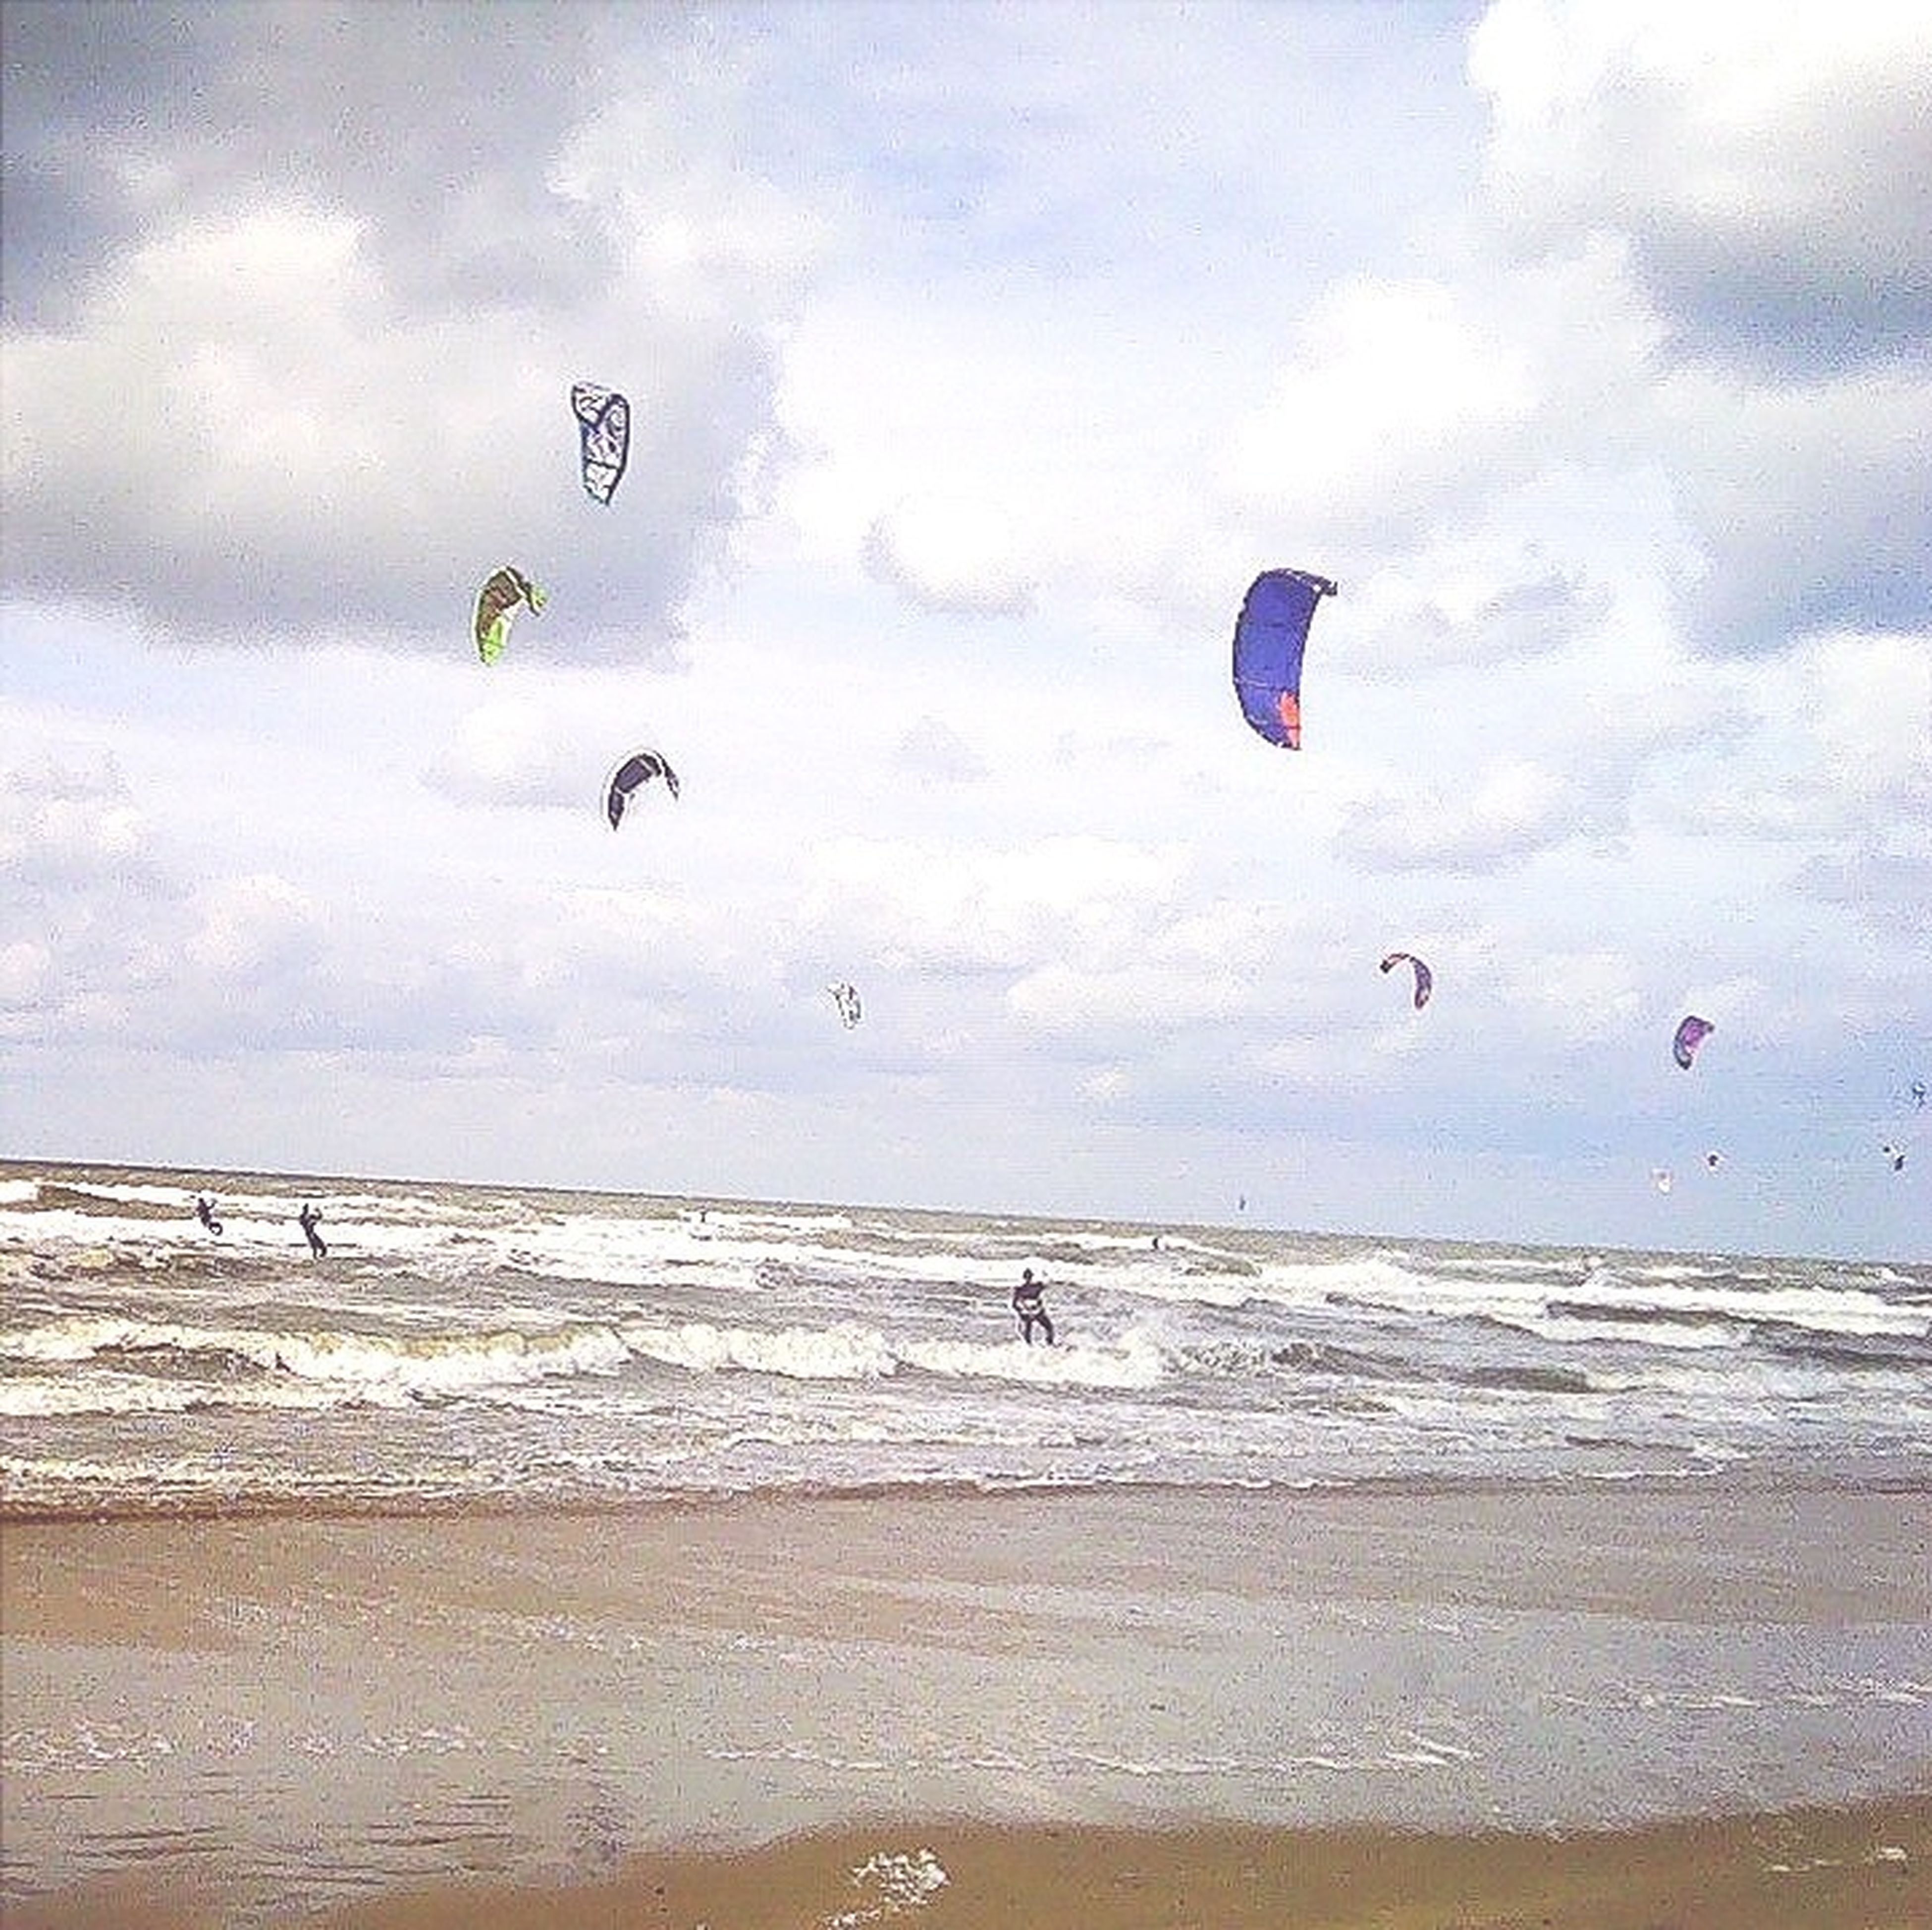 beach, flying, parachute, sea, sky, mid-air, adventure, paragliding, extreme sports, water, sport, scenics, tranquility, sand, cloud - sky, beauty in nature, leisure activity, shore, vacations, nature